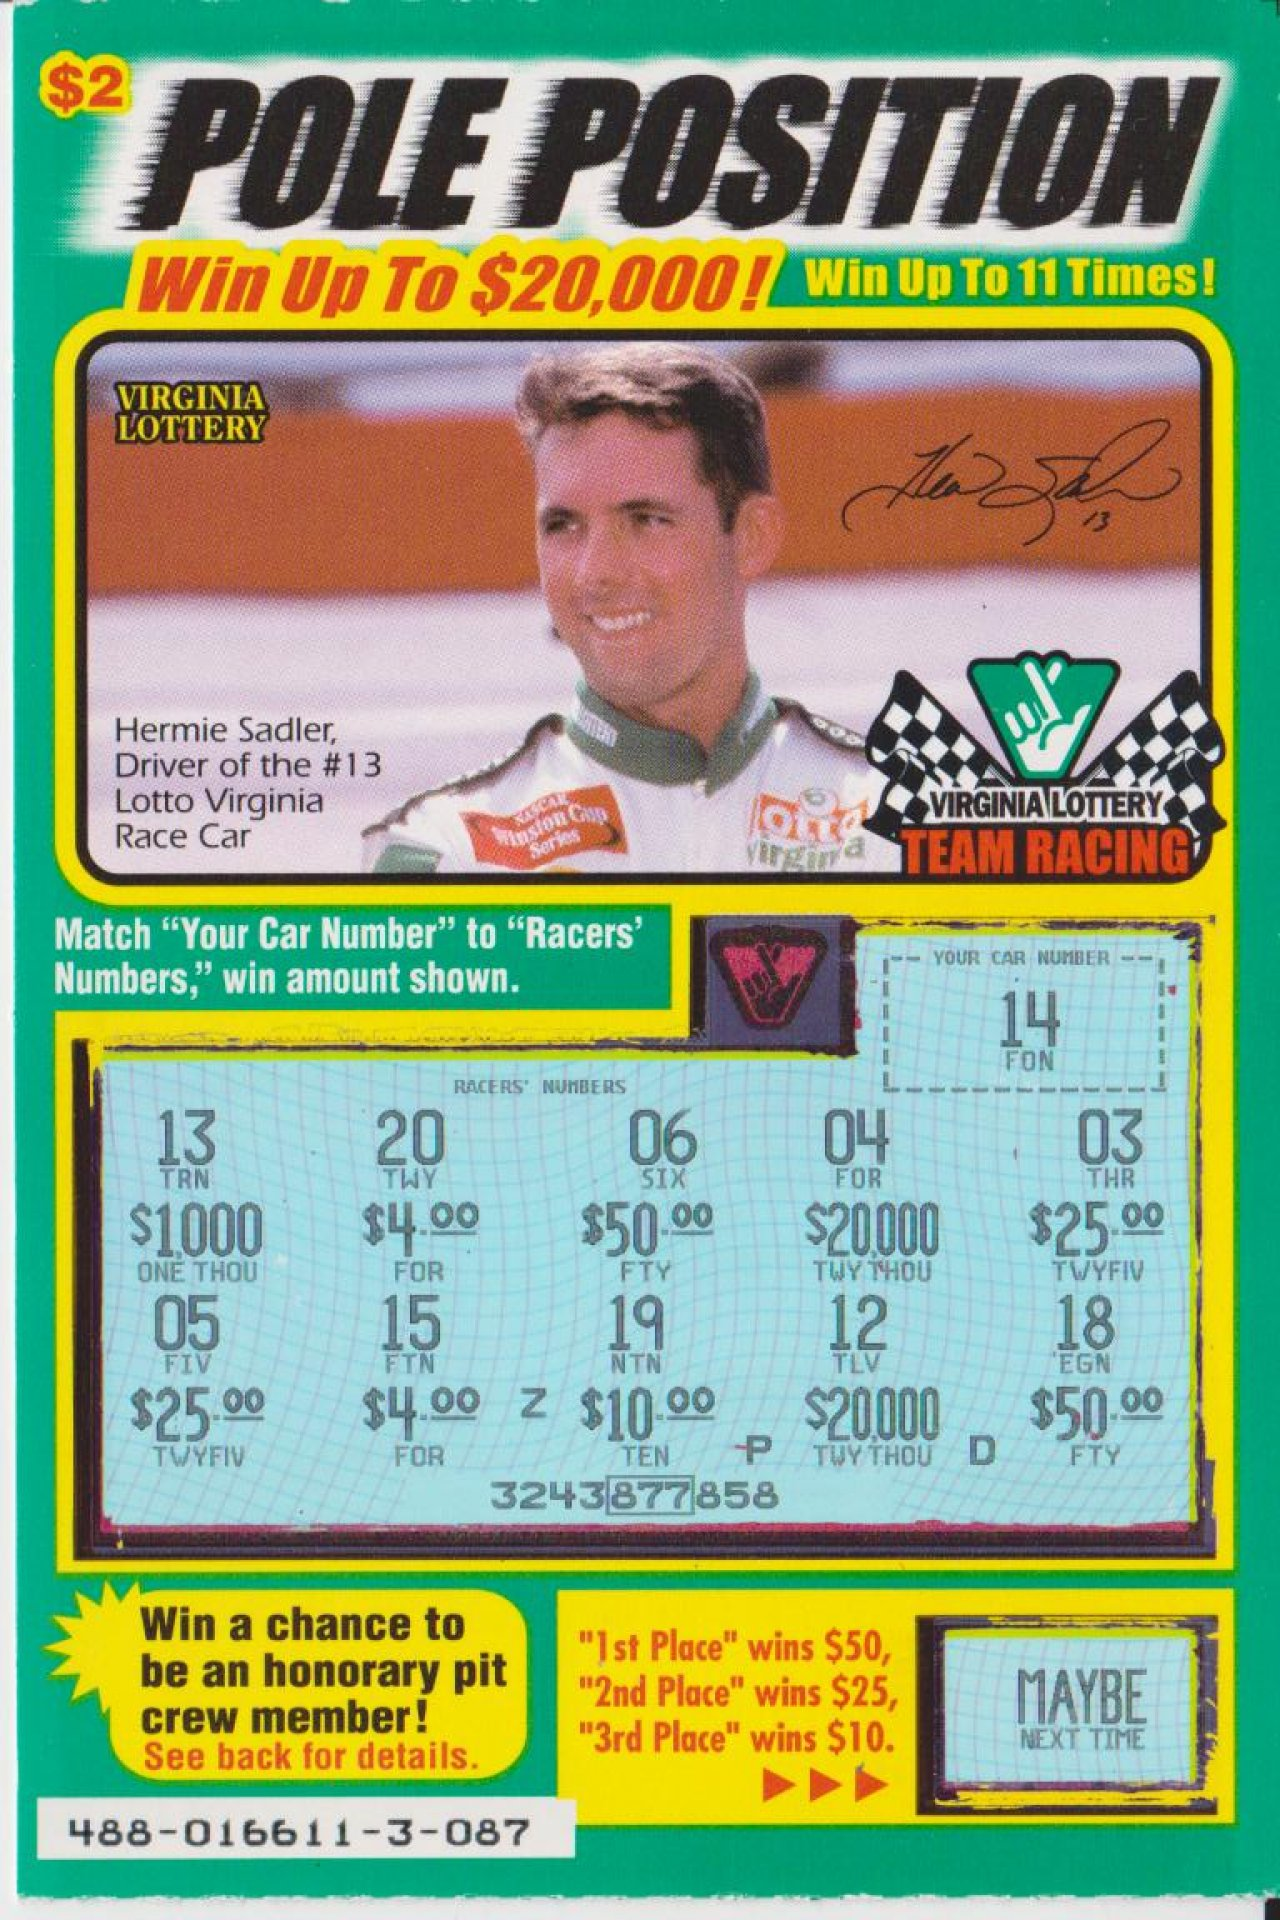 2001 VA  LOTTERY POLE POSITION SCRATCH GAME 01a - Gallery - Dennis